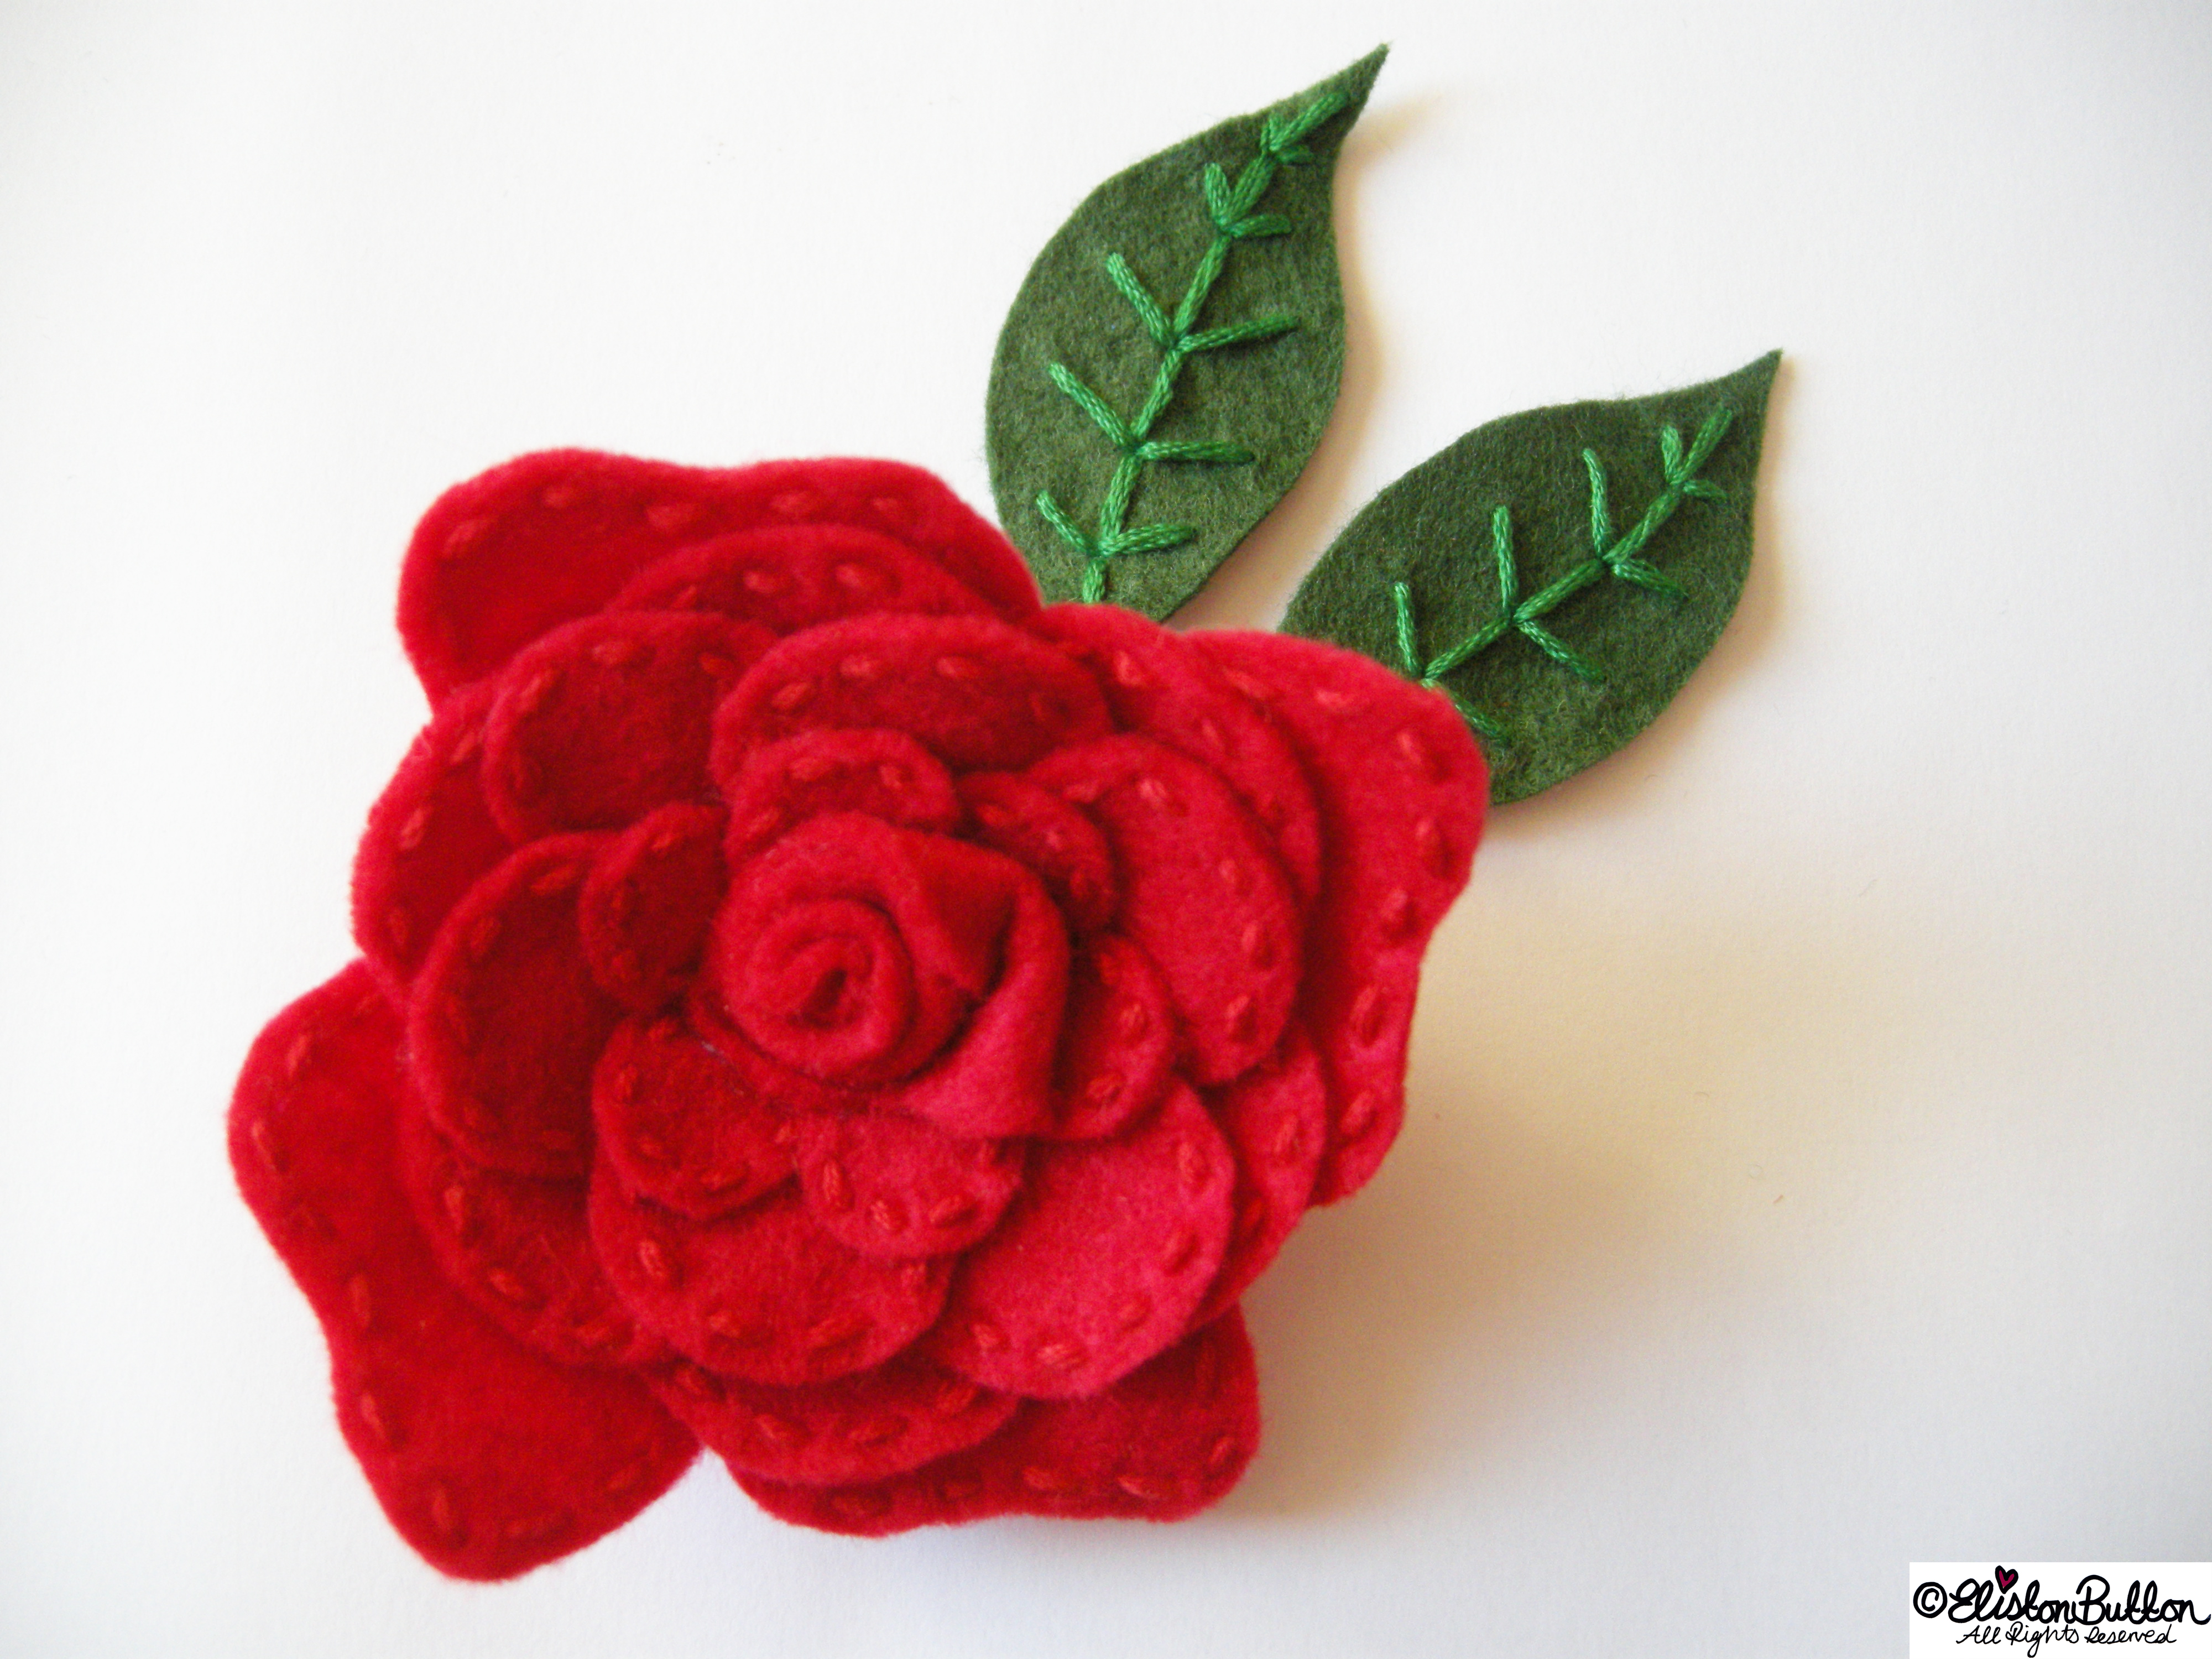 Embroidered Felt Rose Flower - Adding Embroidered Leaves - 27 Before 27 - Roses are Red at www.elistonbutton.com - Eliston Button - That Crafty Kid – Art, Design, Craft & Adventure.